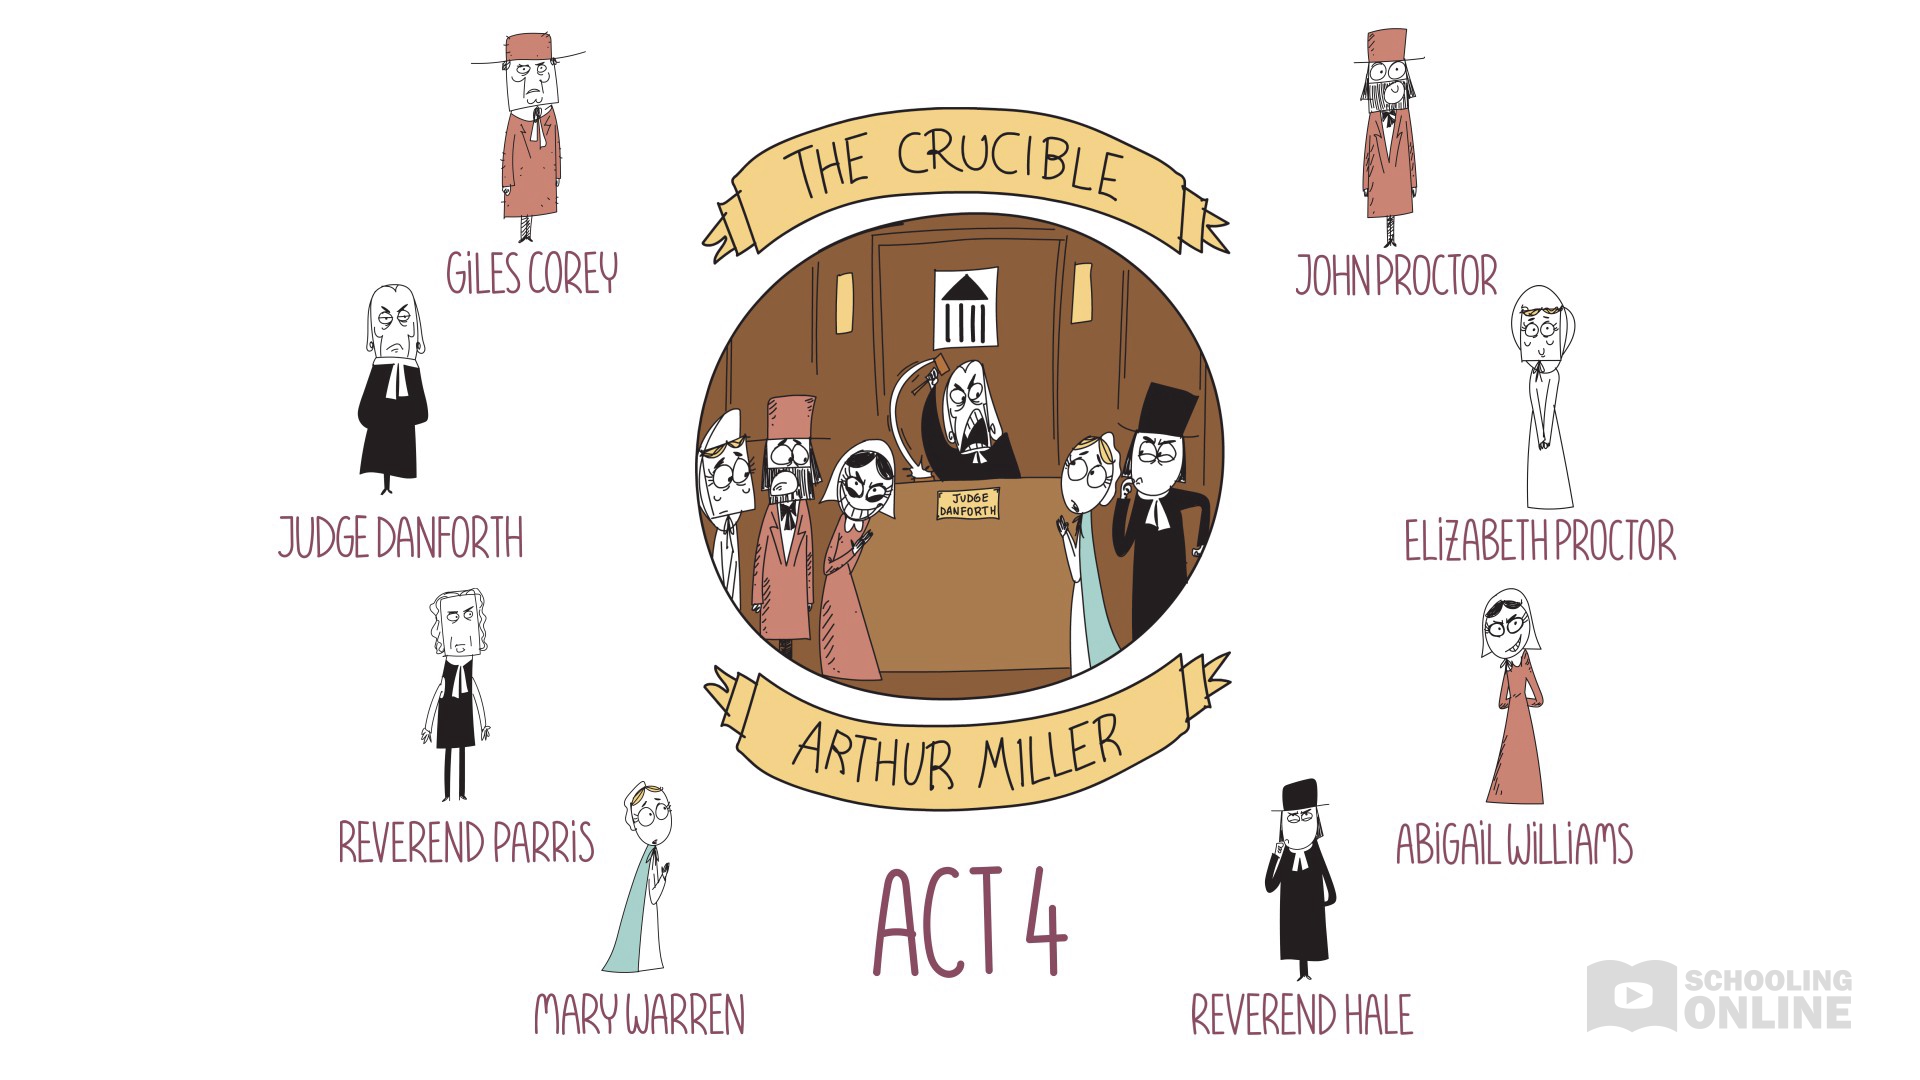 The Crucible - Arthur Miller - Act 4 Summary - Destroying Drama Series